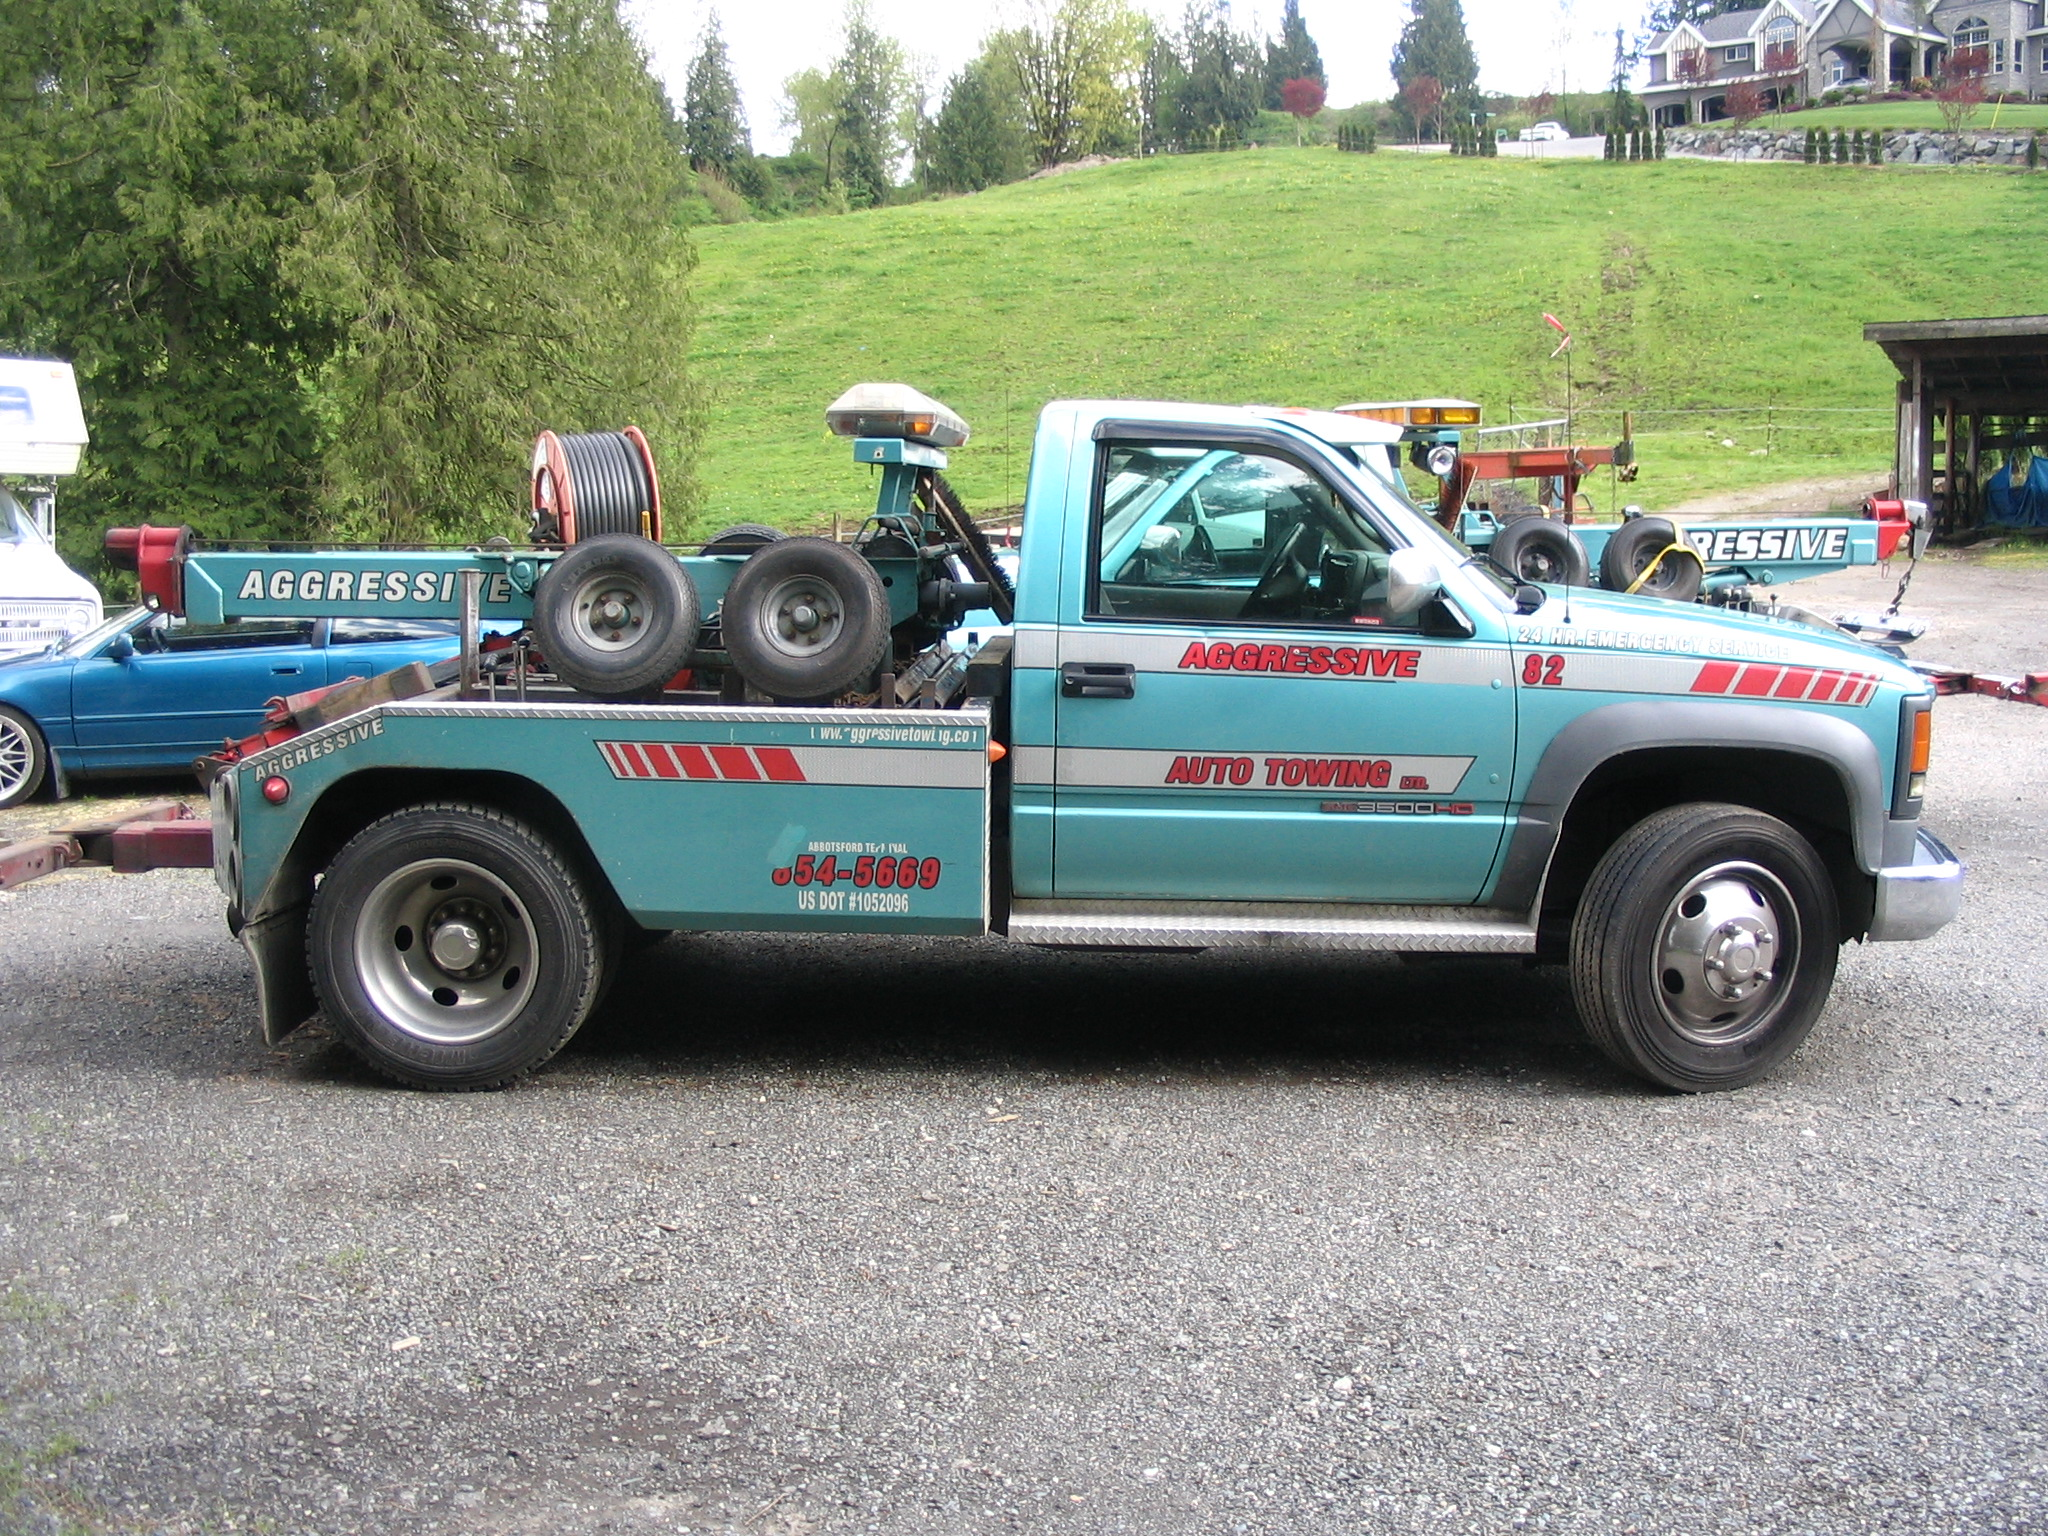 2008 F550 Towing Capacity >> Aggressive Auto Towing Ltd. - Abbotsfords Source for Towing